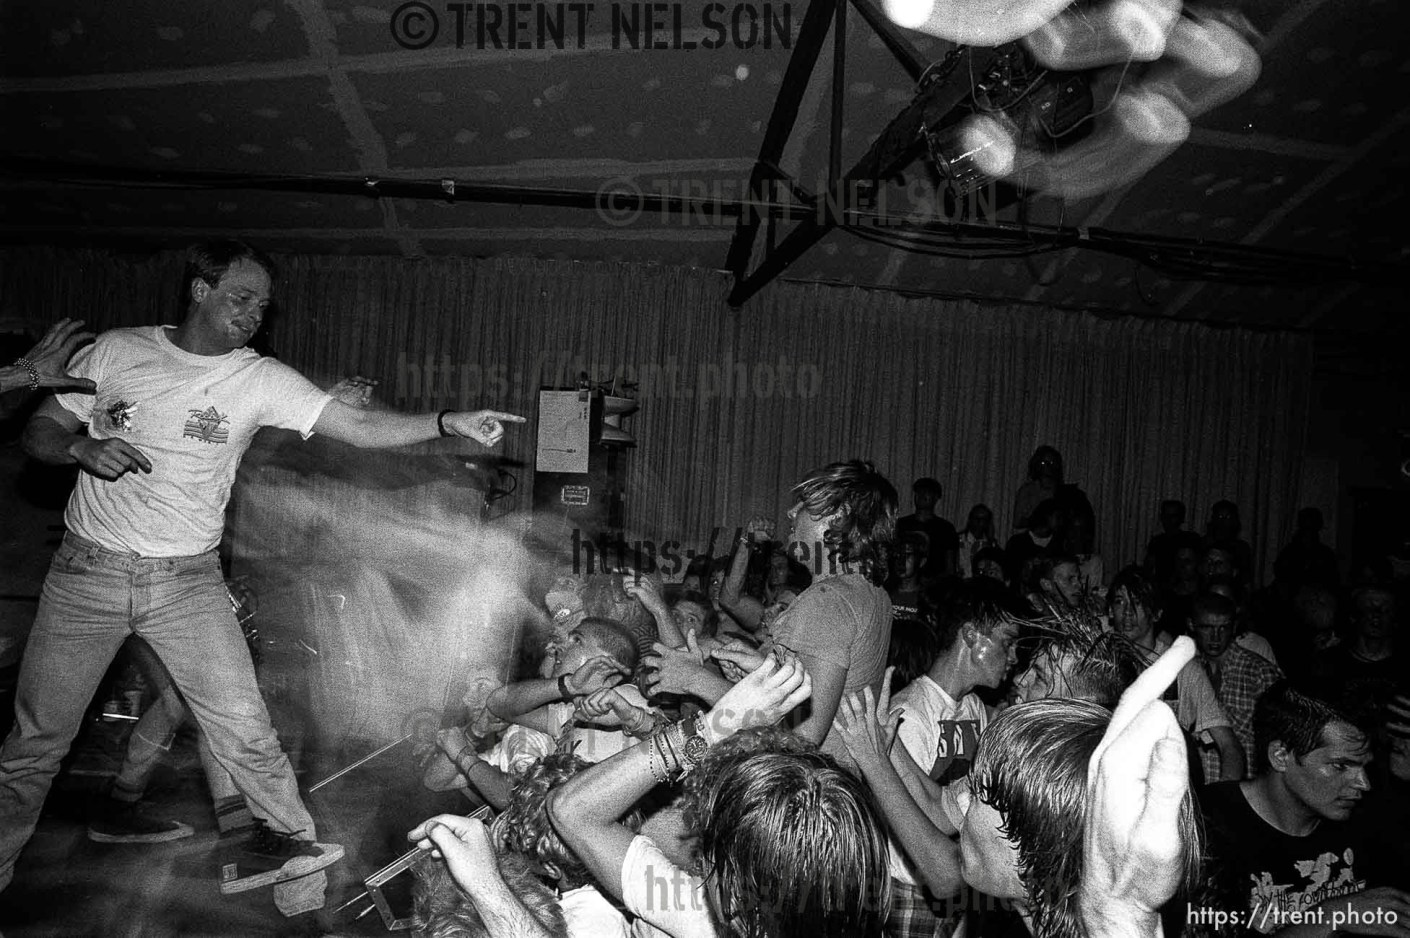 Security fighting with stage-diver and crowd at the SNFU concert at the Speedway Cafe.